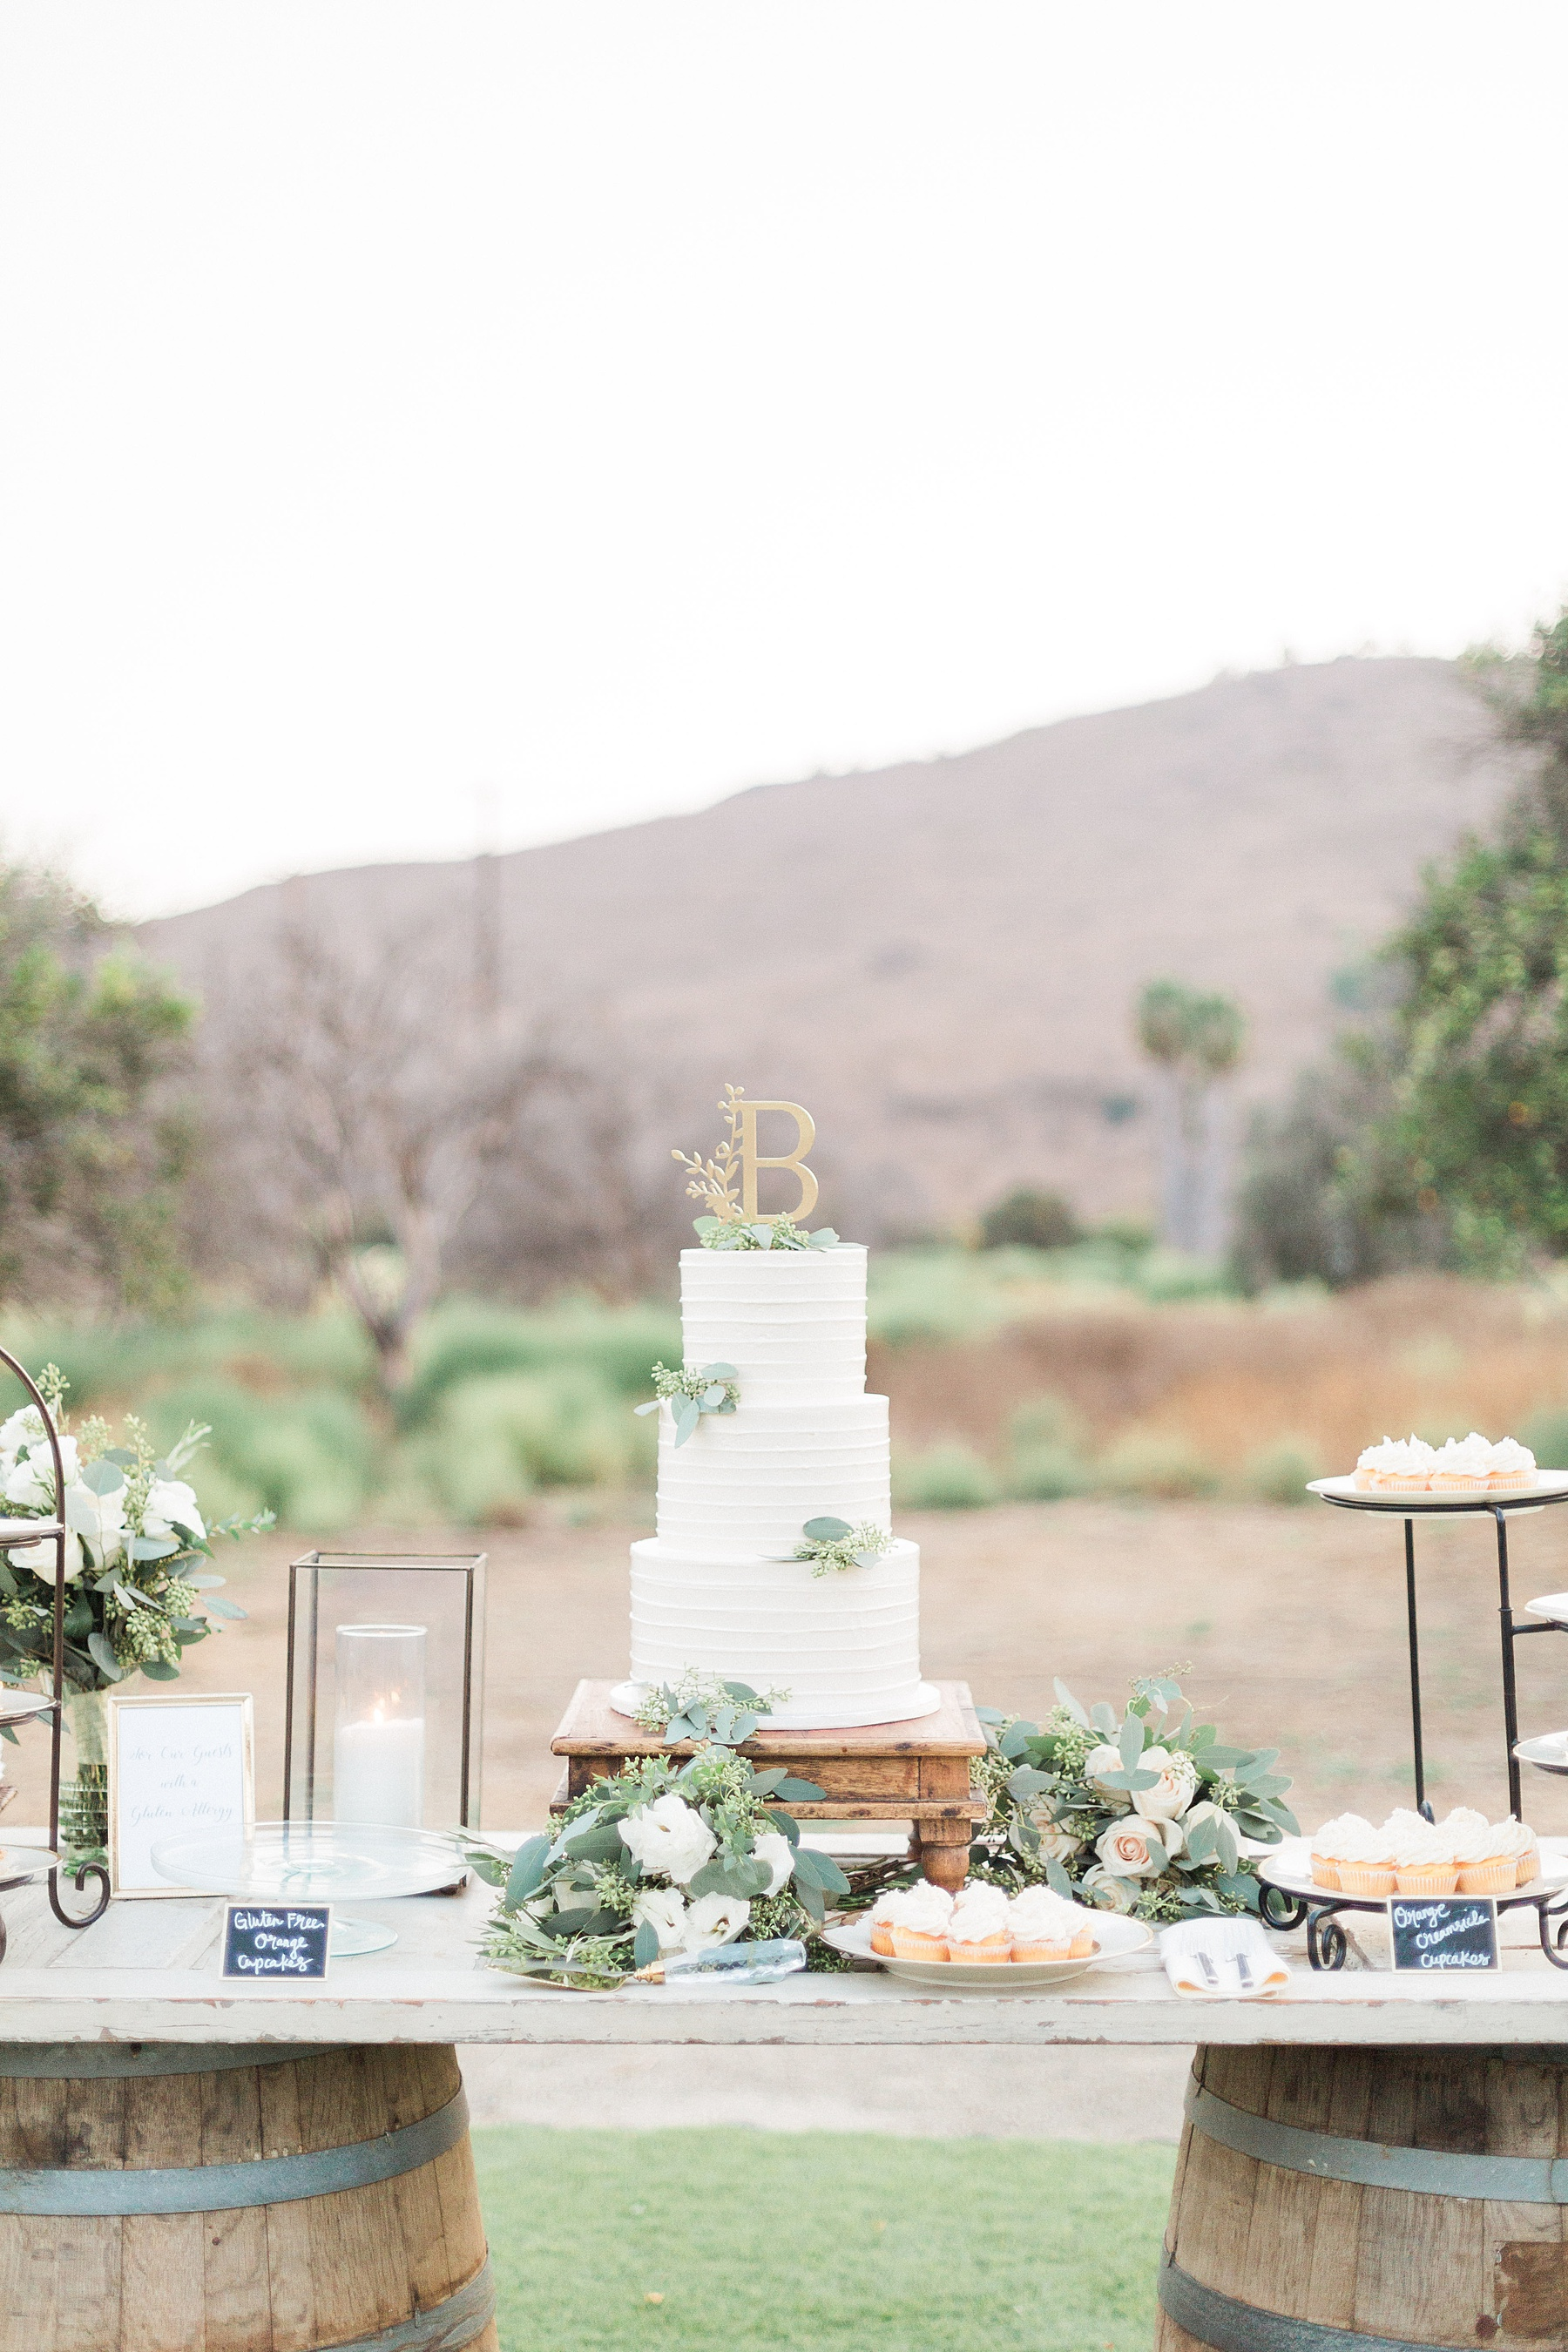 A Romantic Floral Inspired Summer Wedding in the open fields of Hamilton Oaks, San Juan Capistrano by Wedding Photographer Madison Ellis